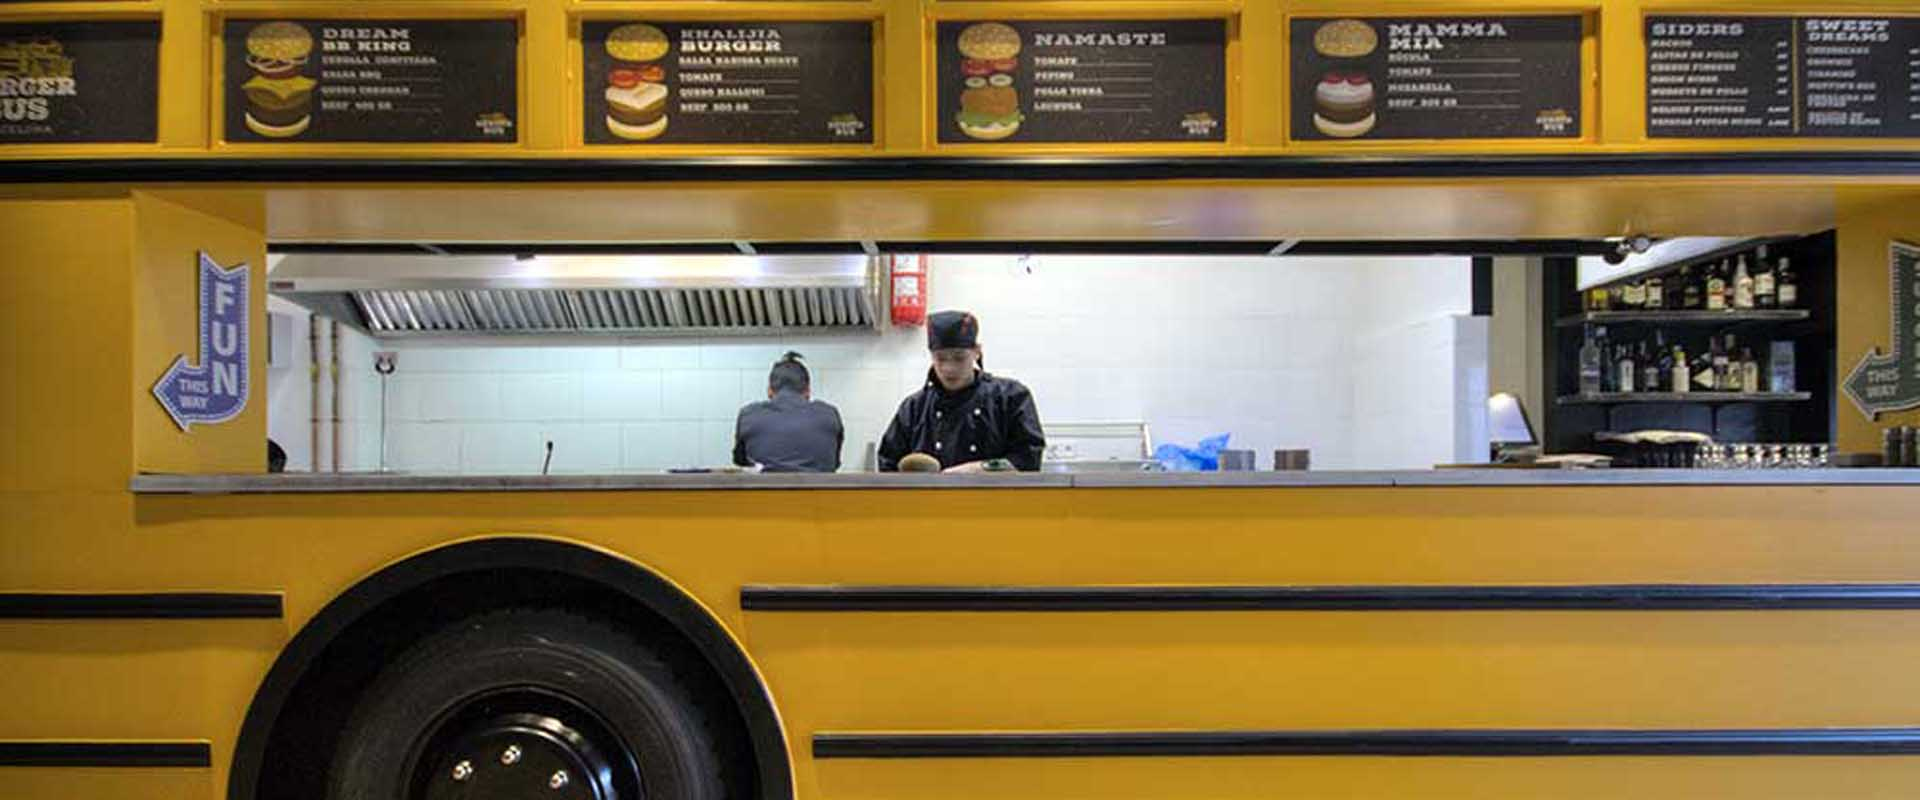 dise o de food truck burger bus barcelona da2 On diseno de cocina food truck